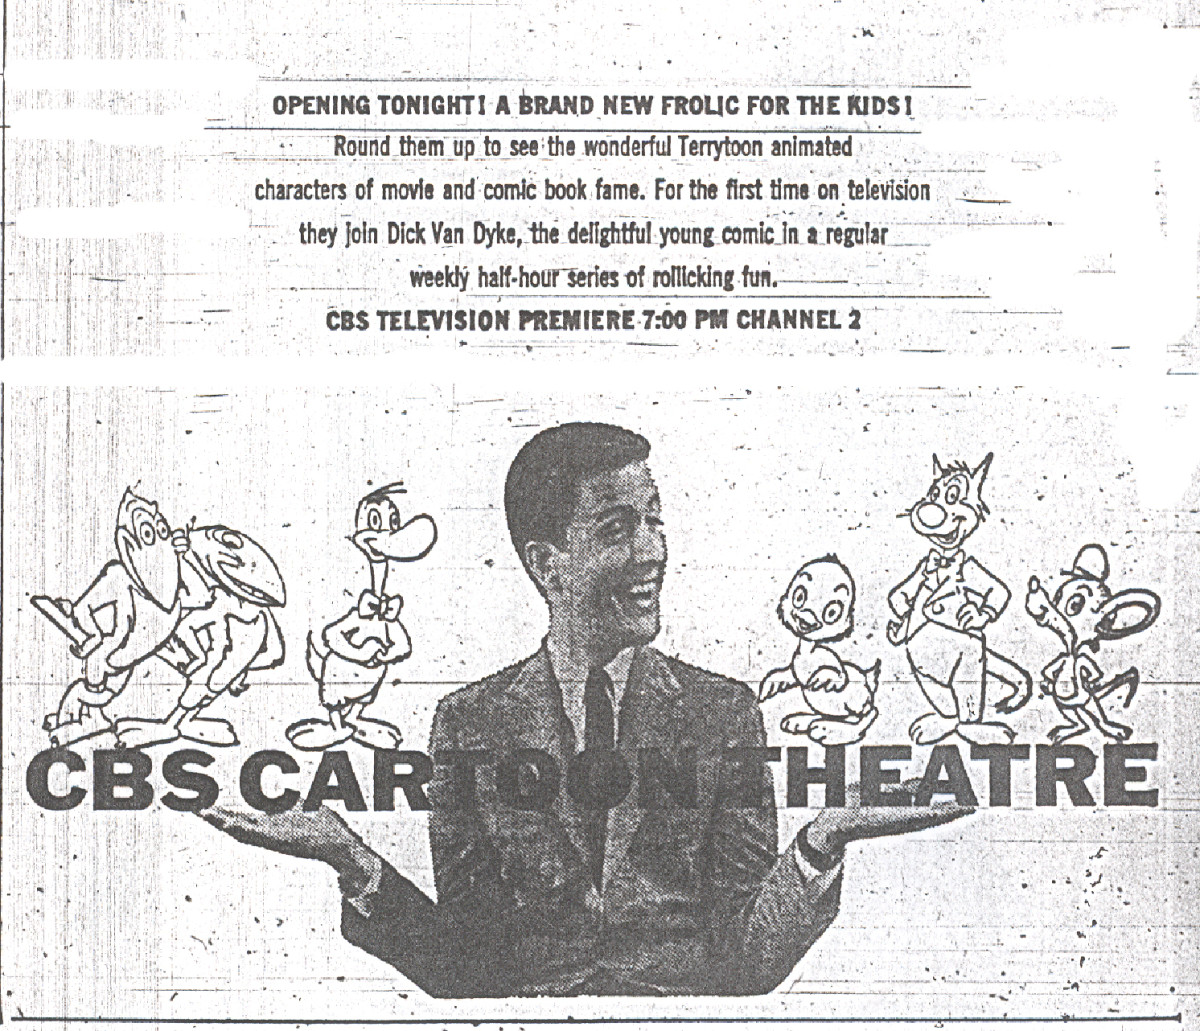 CBS Cartoon Theare (1956), an early attempt at animation in primetime